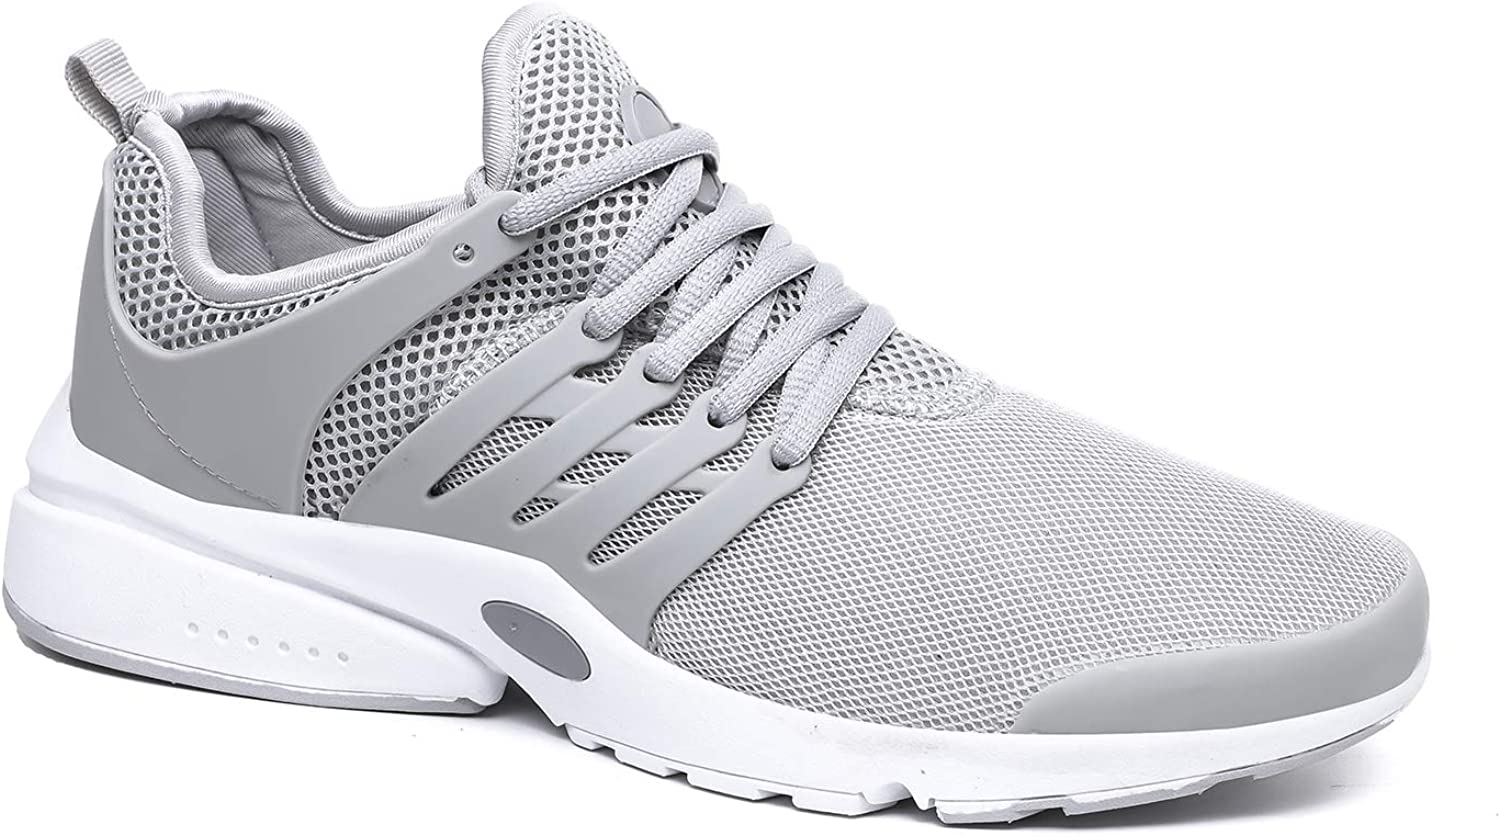 Mens Air Shock Absorbing Running Trainers Jogging Gym Fitness Trainer New Shoes Sizes 7-12 UK